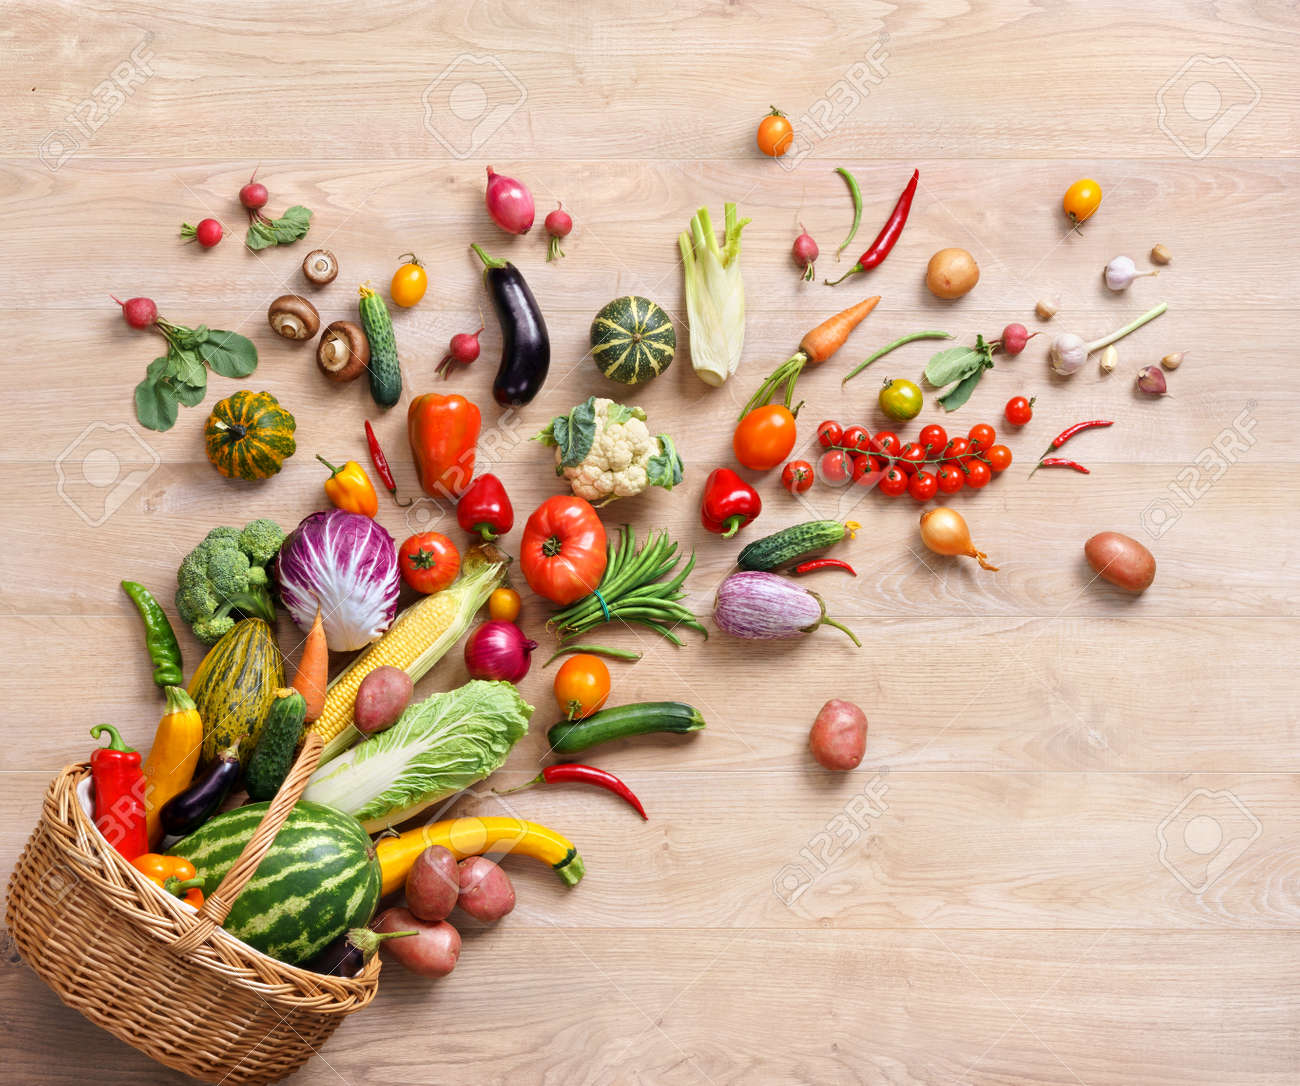 Healthy food background. studio photography of different fruits and vegetables on wooden table - 52849018